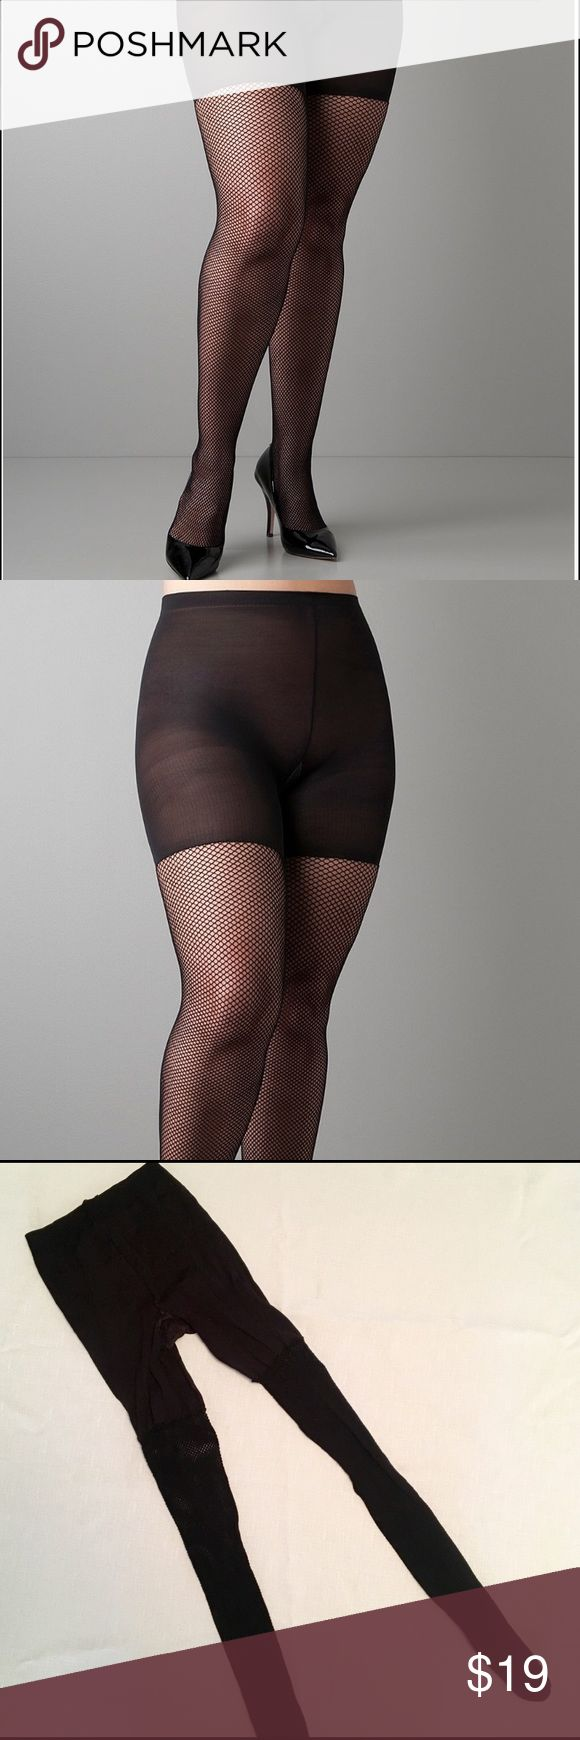 New Spanx Size D Black Fishnet Stockings Tights Brand new. Tried on but never worn out. Thick, Knit fishnet with a strong control top. No flaws or tears. Fishnet pantyhose that slims your tummy, thighs and rear! Spanx has combined sexy, plus-size fishnet legs and their amazing control panty with a non-binding waistband and cotton gusset. Size D, fits 5-6 foot 165-220 lbs. Please see size chart. SPANX Intimates & Sleepwear Shapewear